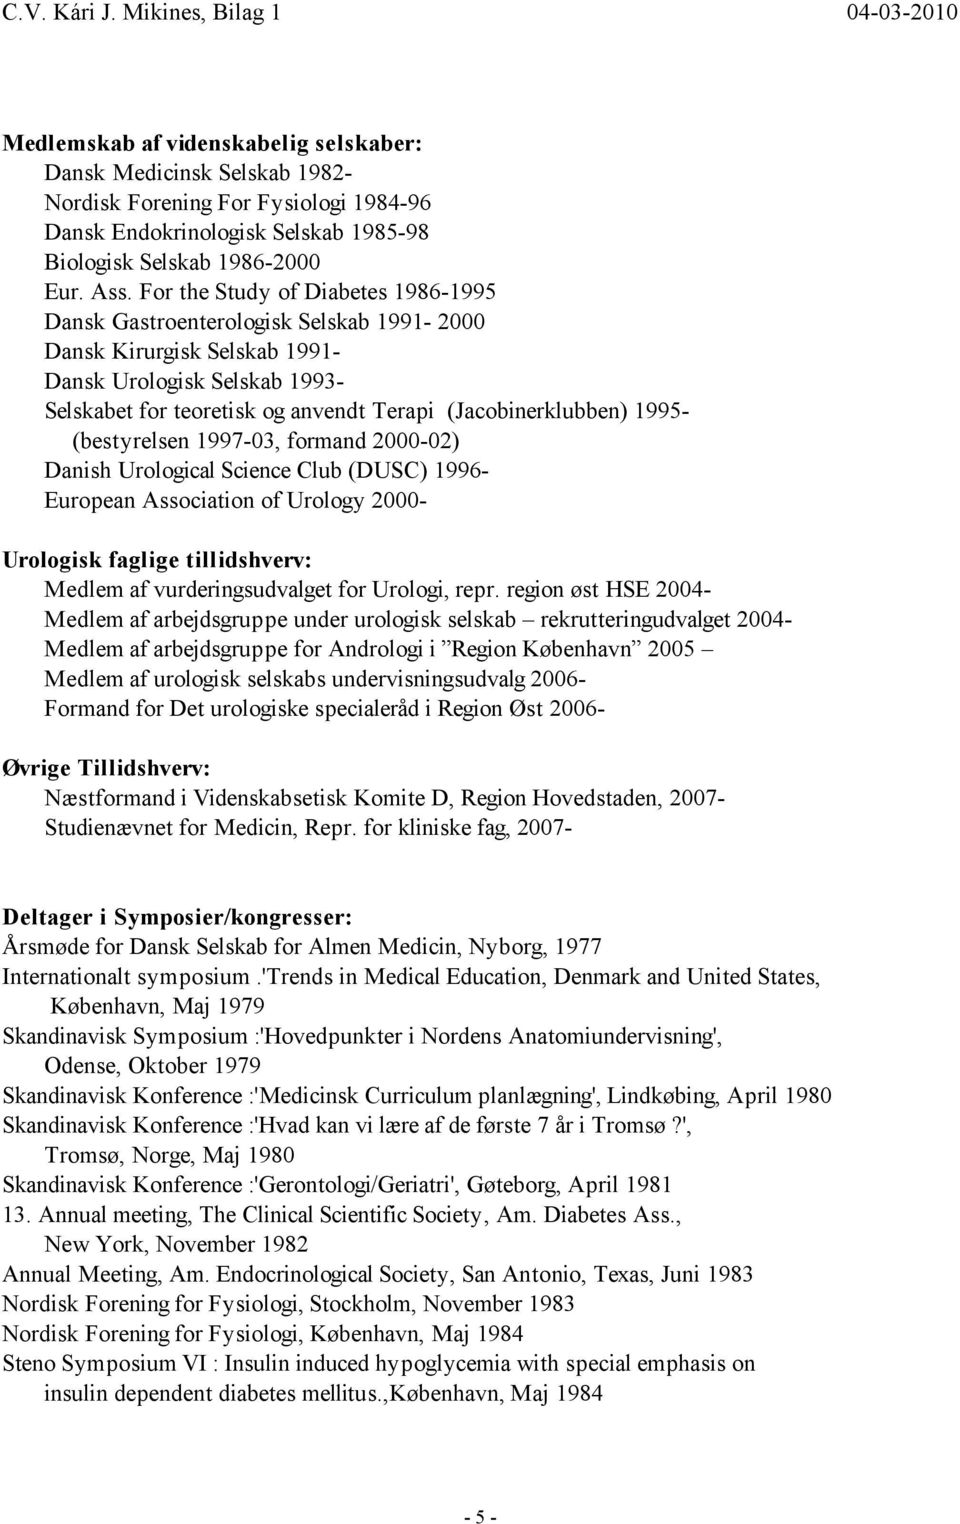 1995- (bestyrelsen 1997-03, formand 2000-02) Danish Urological Science Club (DUSC) 1996- European Association of Urology 2000- Urologisk faglige tillidshverv: Medlem af vurderingsudvalget for